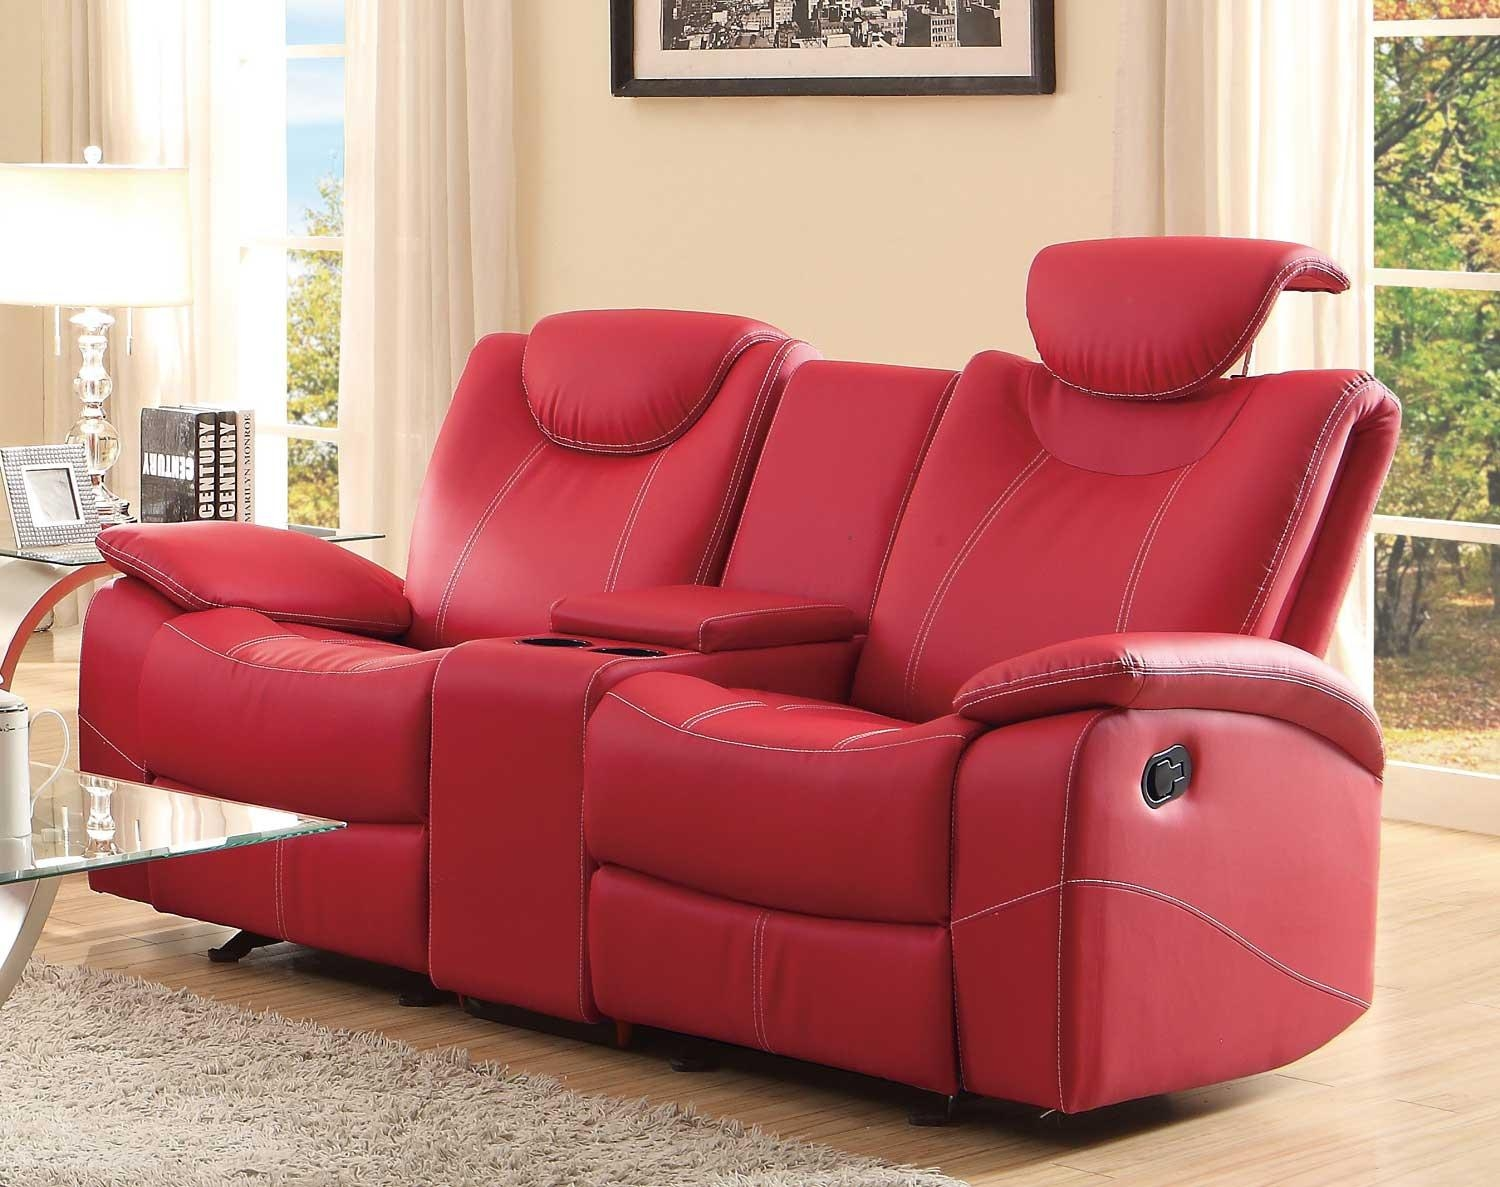 Furniture: Glamour Reclining Loveseat With Center Console For In Modern Reclining Leather Sofas (Image 5 of 20)